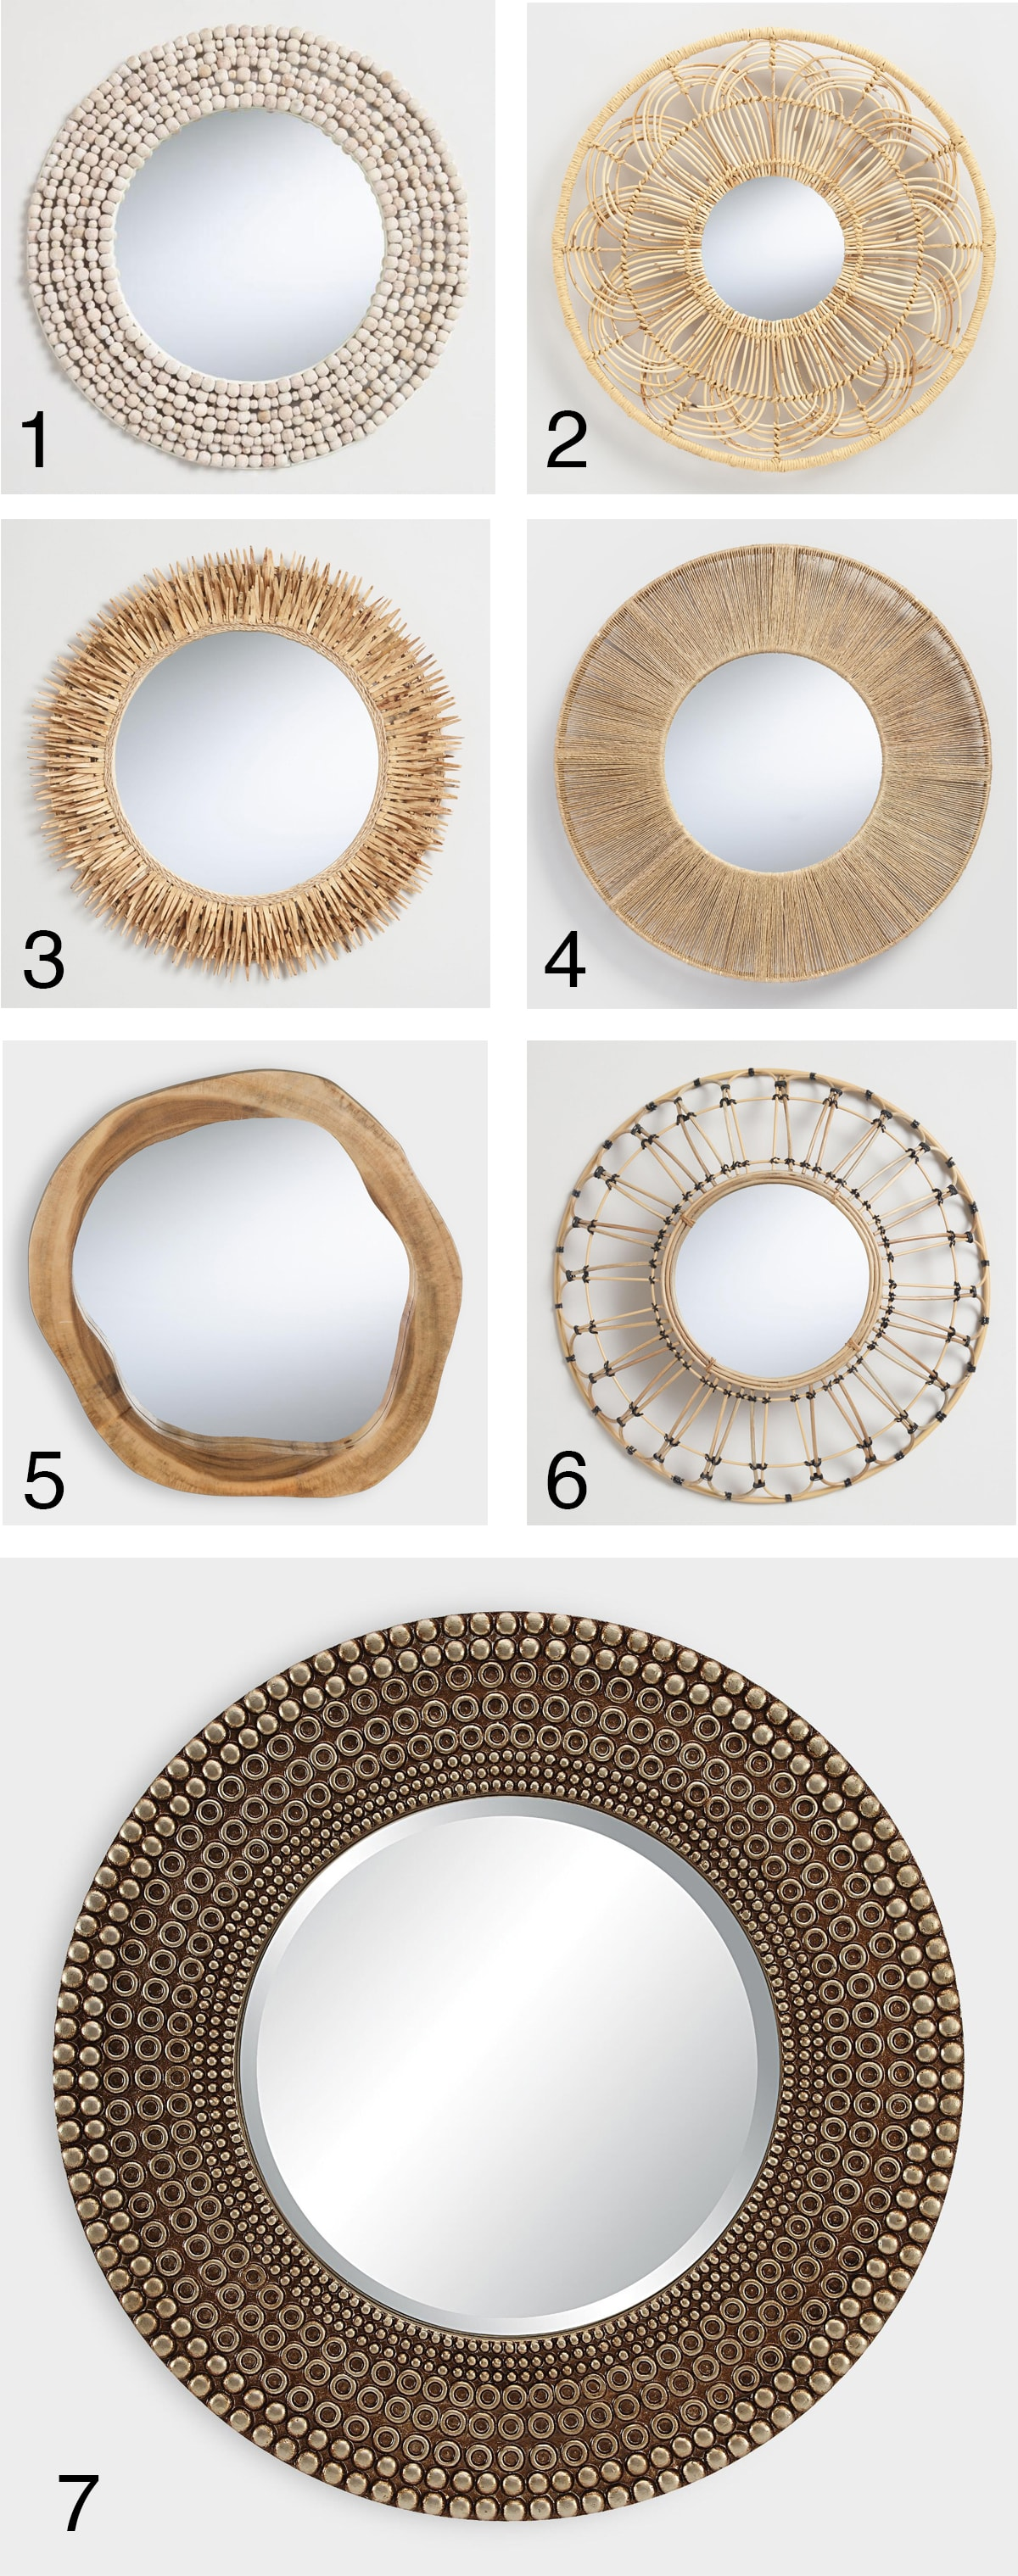 boho mirrors made from natural materials